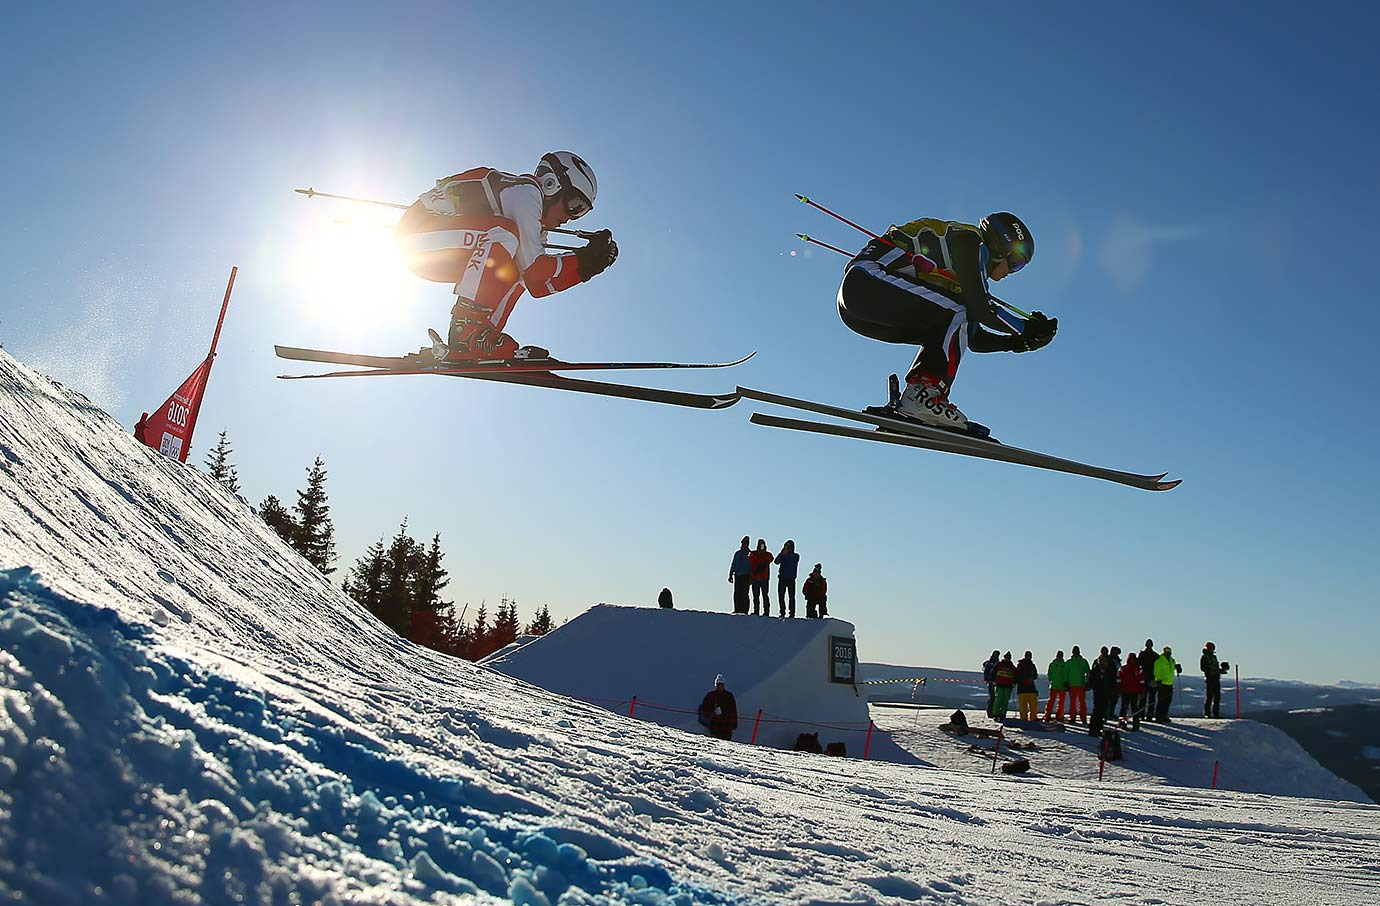 Nicoline Nielsen (DEN) and Margot Tresal Mauroz (FRA) compete in the Ladies Ski Cross at the Hafjell Freepark heats on Feb. 15, 2016 during the Winter Youth Olympic Games in Lillehammer, Norway.